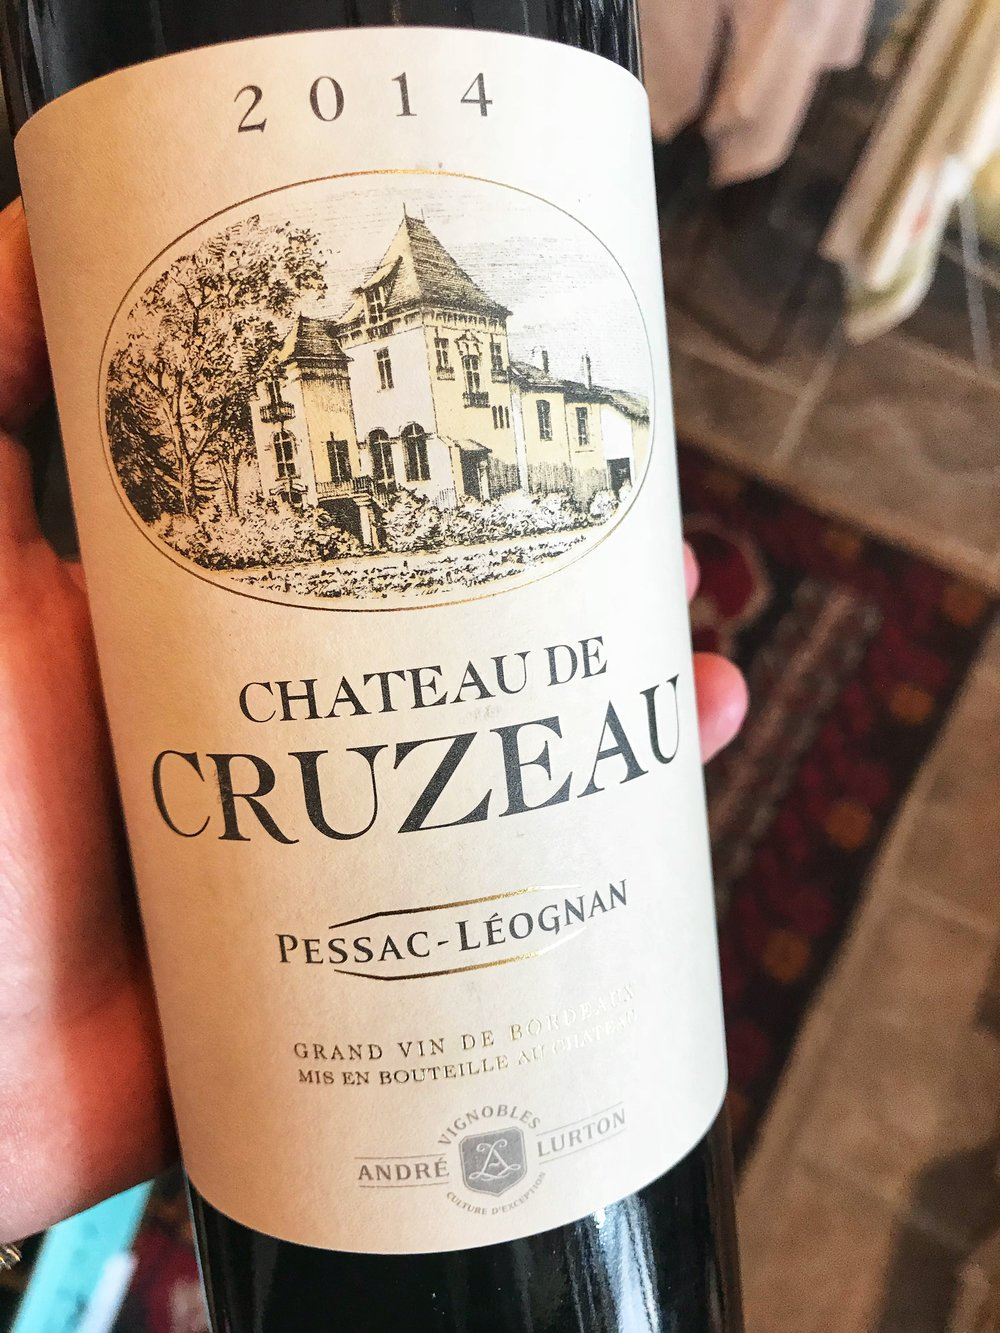 "2014 Chateau de Cruzeau, Pessac-Léognan: 91 Wine Advocate. The Château Cruzeau 2014 has an elegant, harmonious and complex nose, classically tailored but with good fruit intensity. The palate is medium-bodied with crisp tannin, delightful tobacco-tinged black fruit with a structured, masculine finish that is your typical ""classic claret"" made in accomplished fashion. I appreciate the style and terroir-expression already present here.  $29.99"